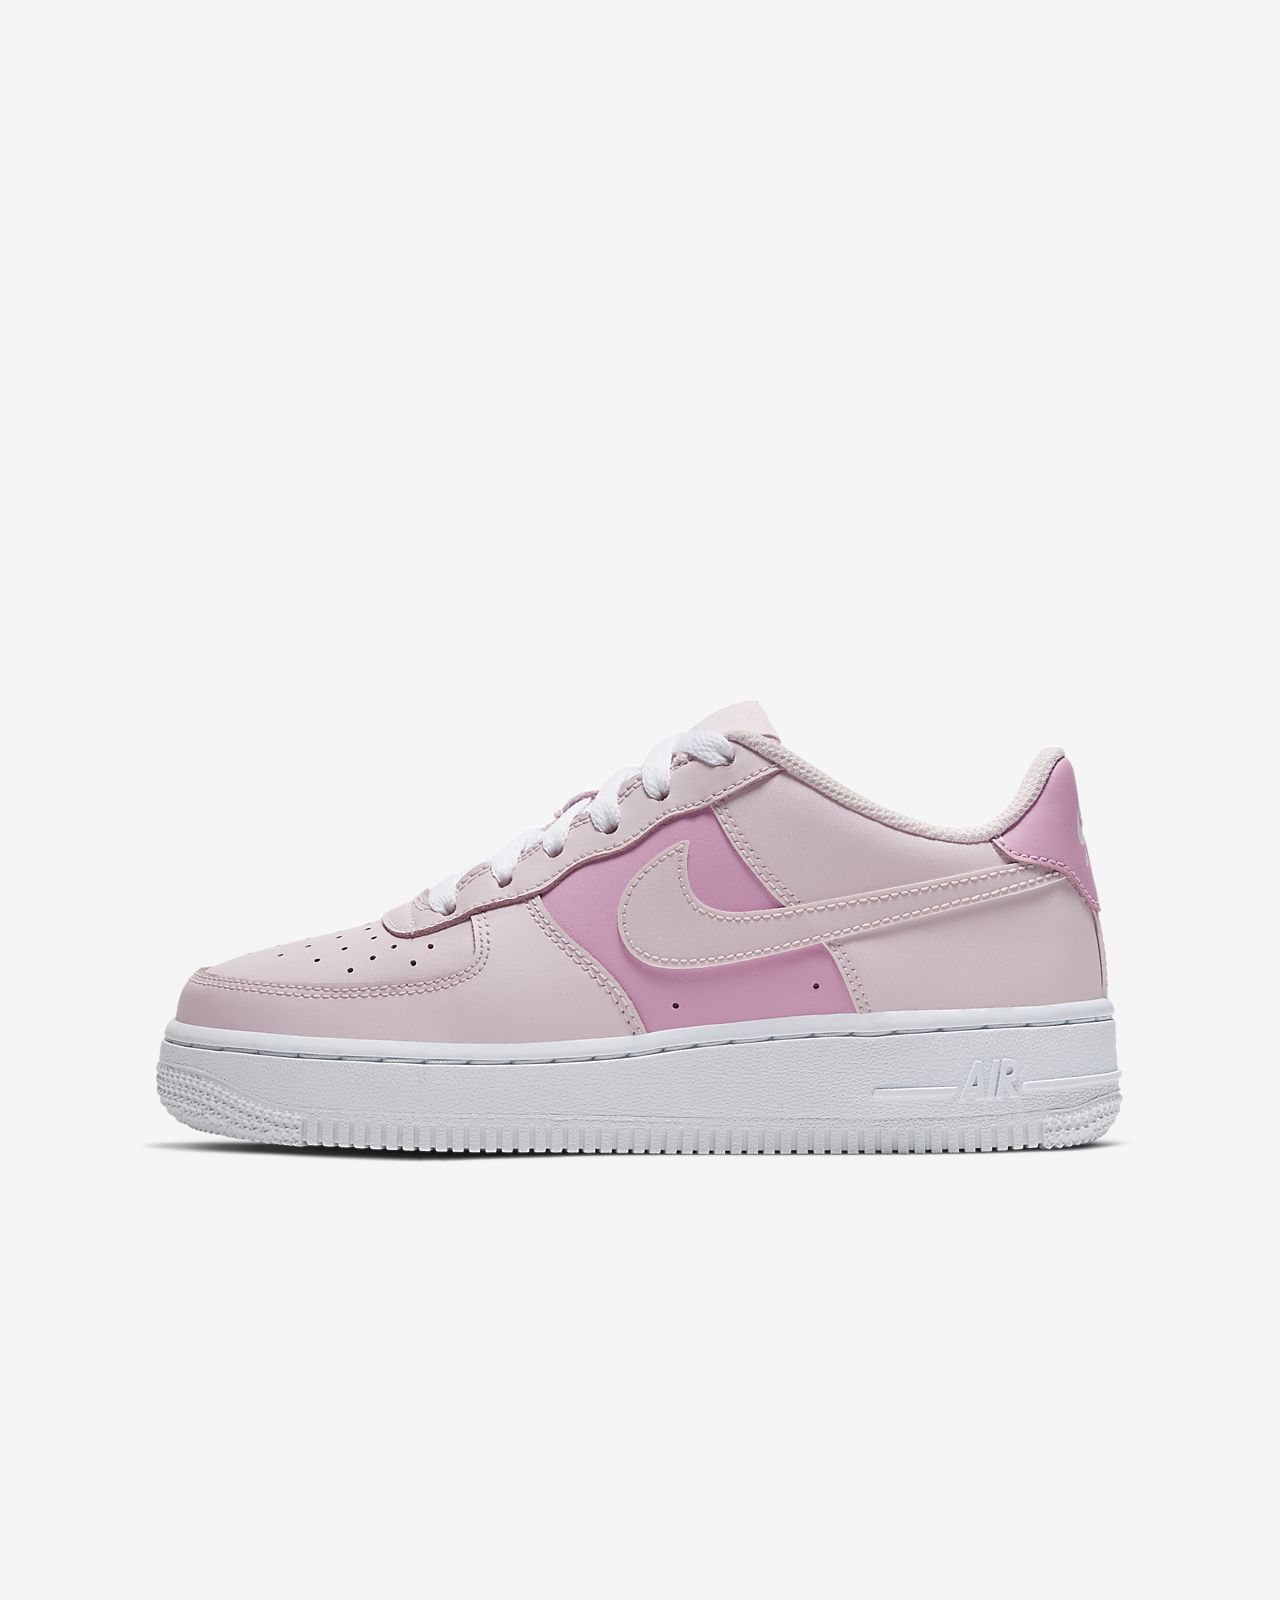 nike air force 1 grise et blanche